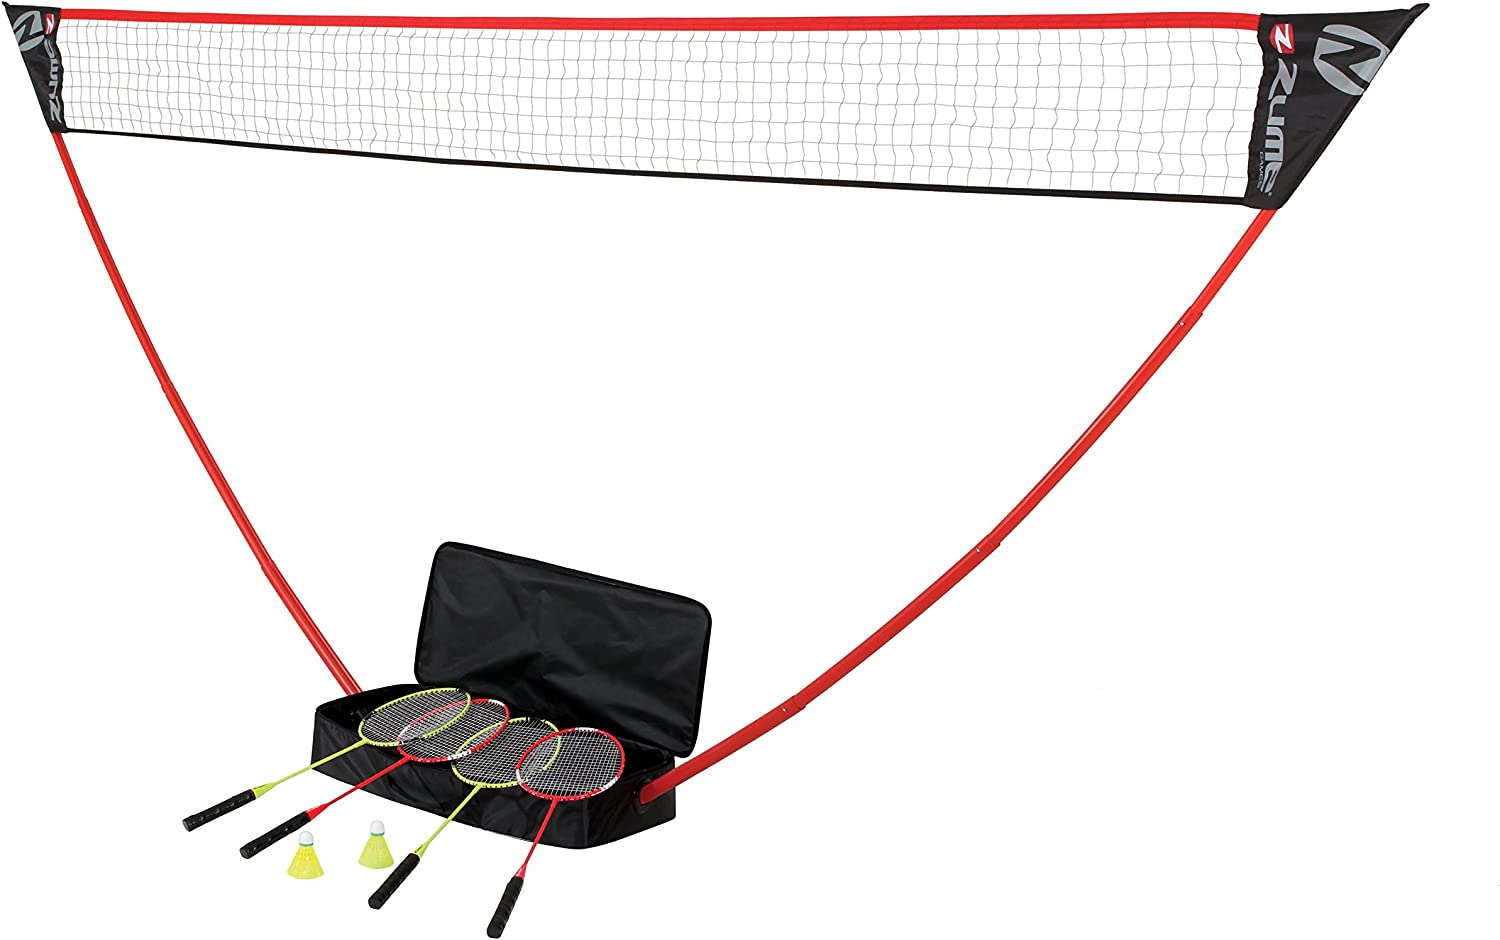 Zume Games Portable Badminton Set with Freestanding Base – Sets Up on Any Surface in Seconds – No Tools or Stakes Required : Badminton Sets : Sports & Outdoors